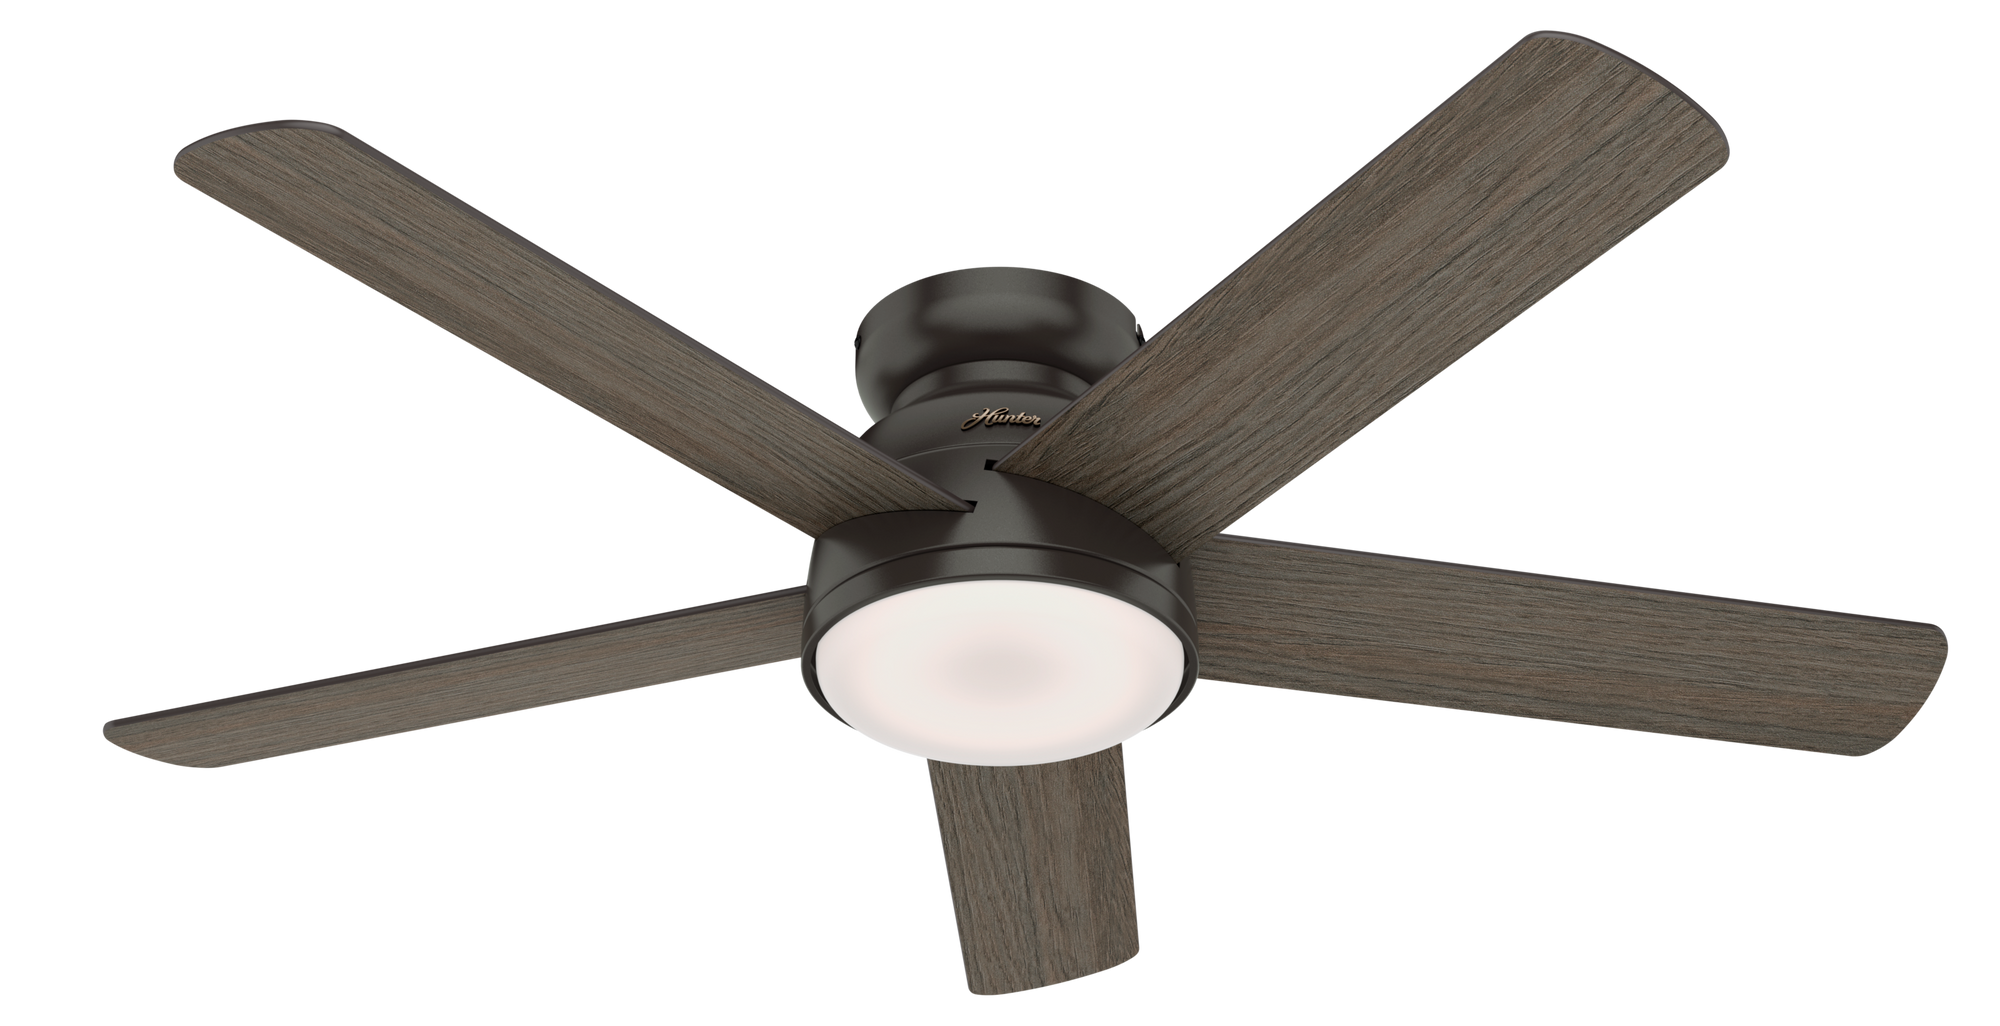 Hunter Indoor Low Profile Romulus Ceiling Fan with LED LightJD inch, Bronze/Brown, 59482